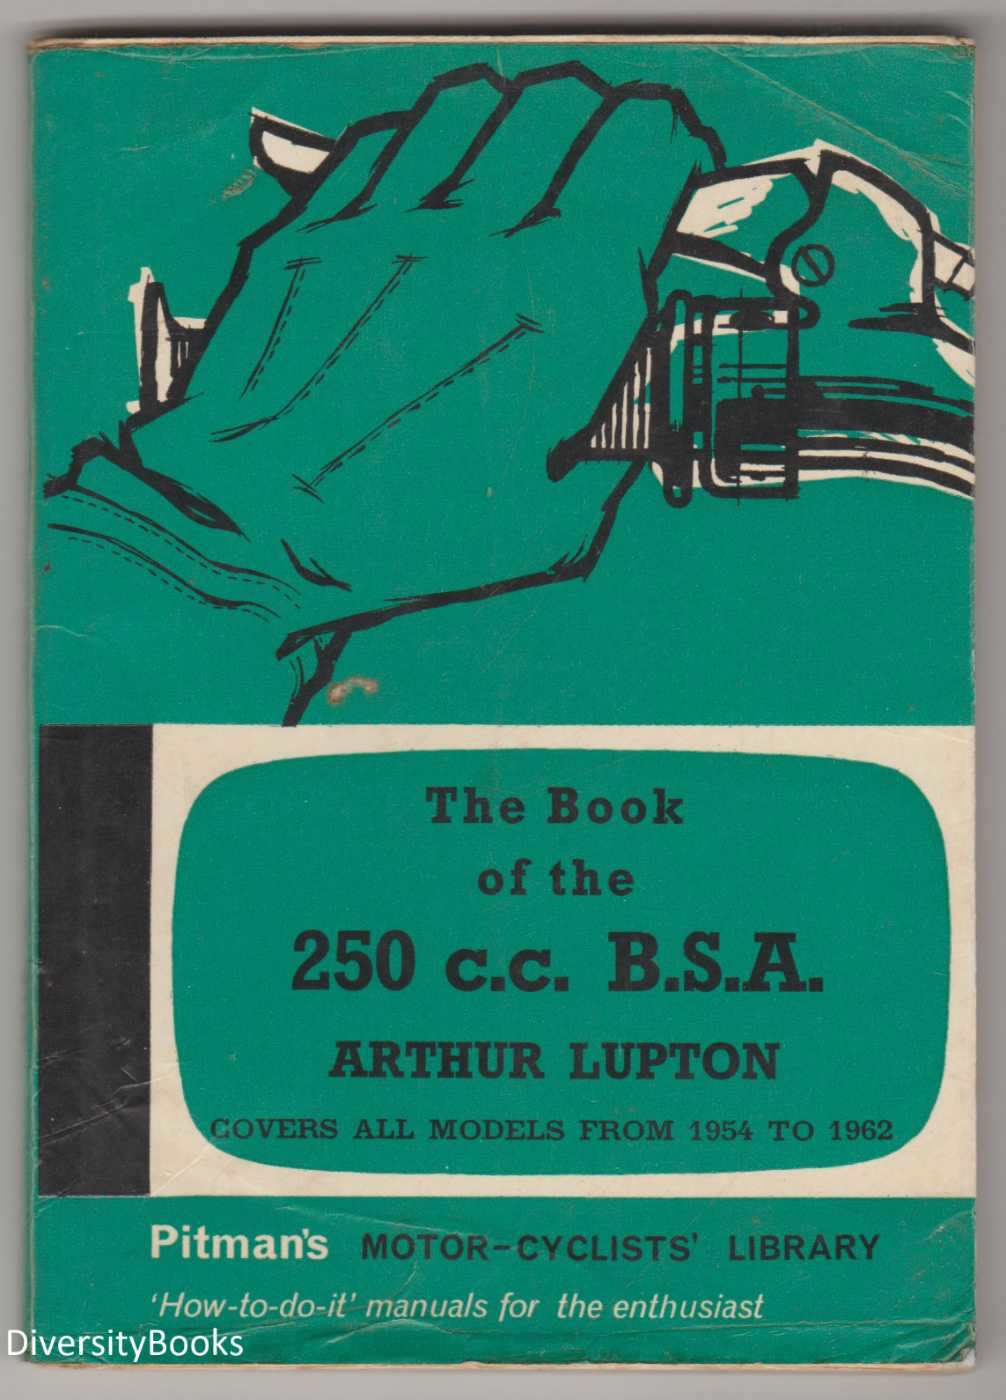 Image for THE BOOK OF THE 250 c.c. B.S.A. A Practical Handbook Covering All Models from 1954 to 1962